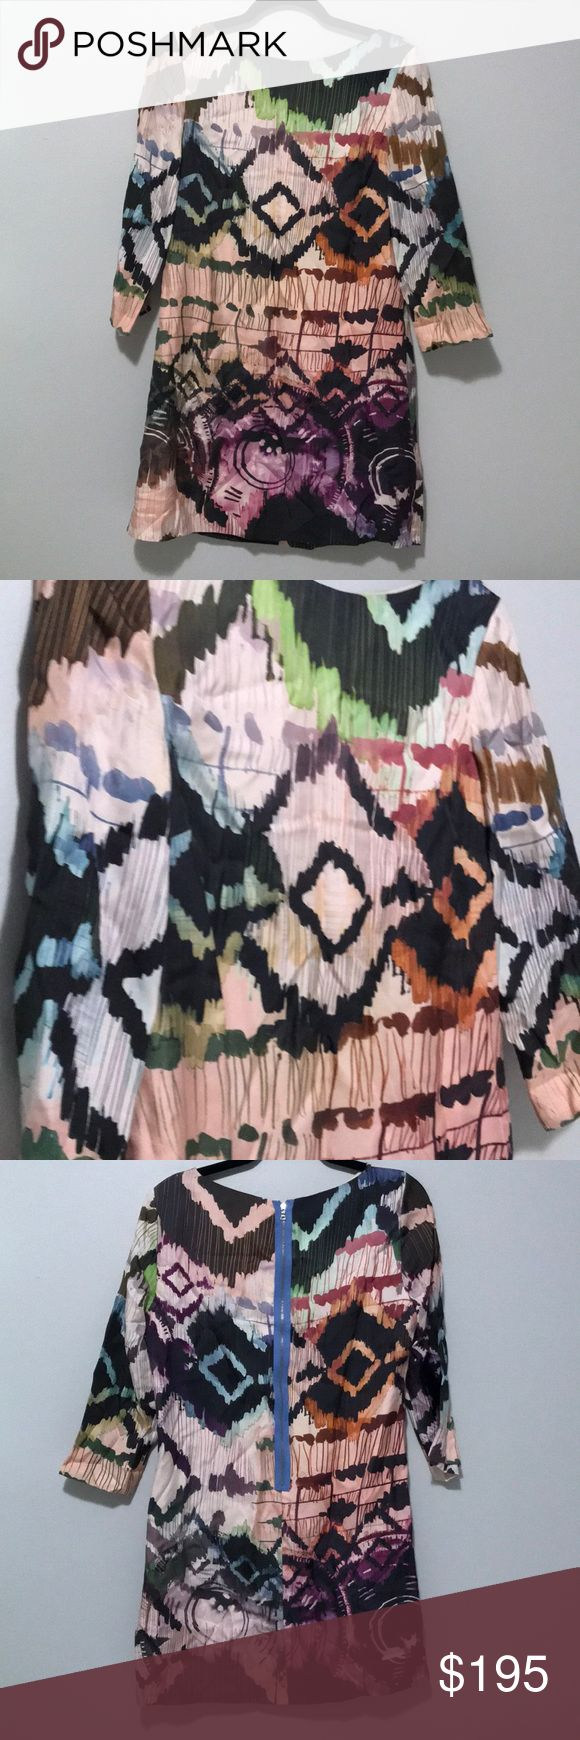 Ali Ro shift dress Silk shift dress - super cool on with booties! Great for weddings! Worn maybe 2-5 times! Must sell by 1/26!! Ali Ro Dresses Midi